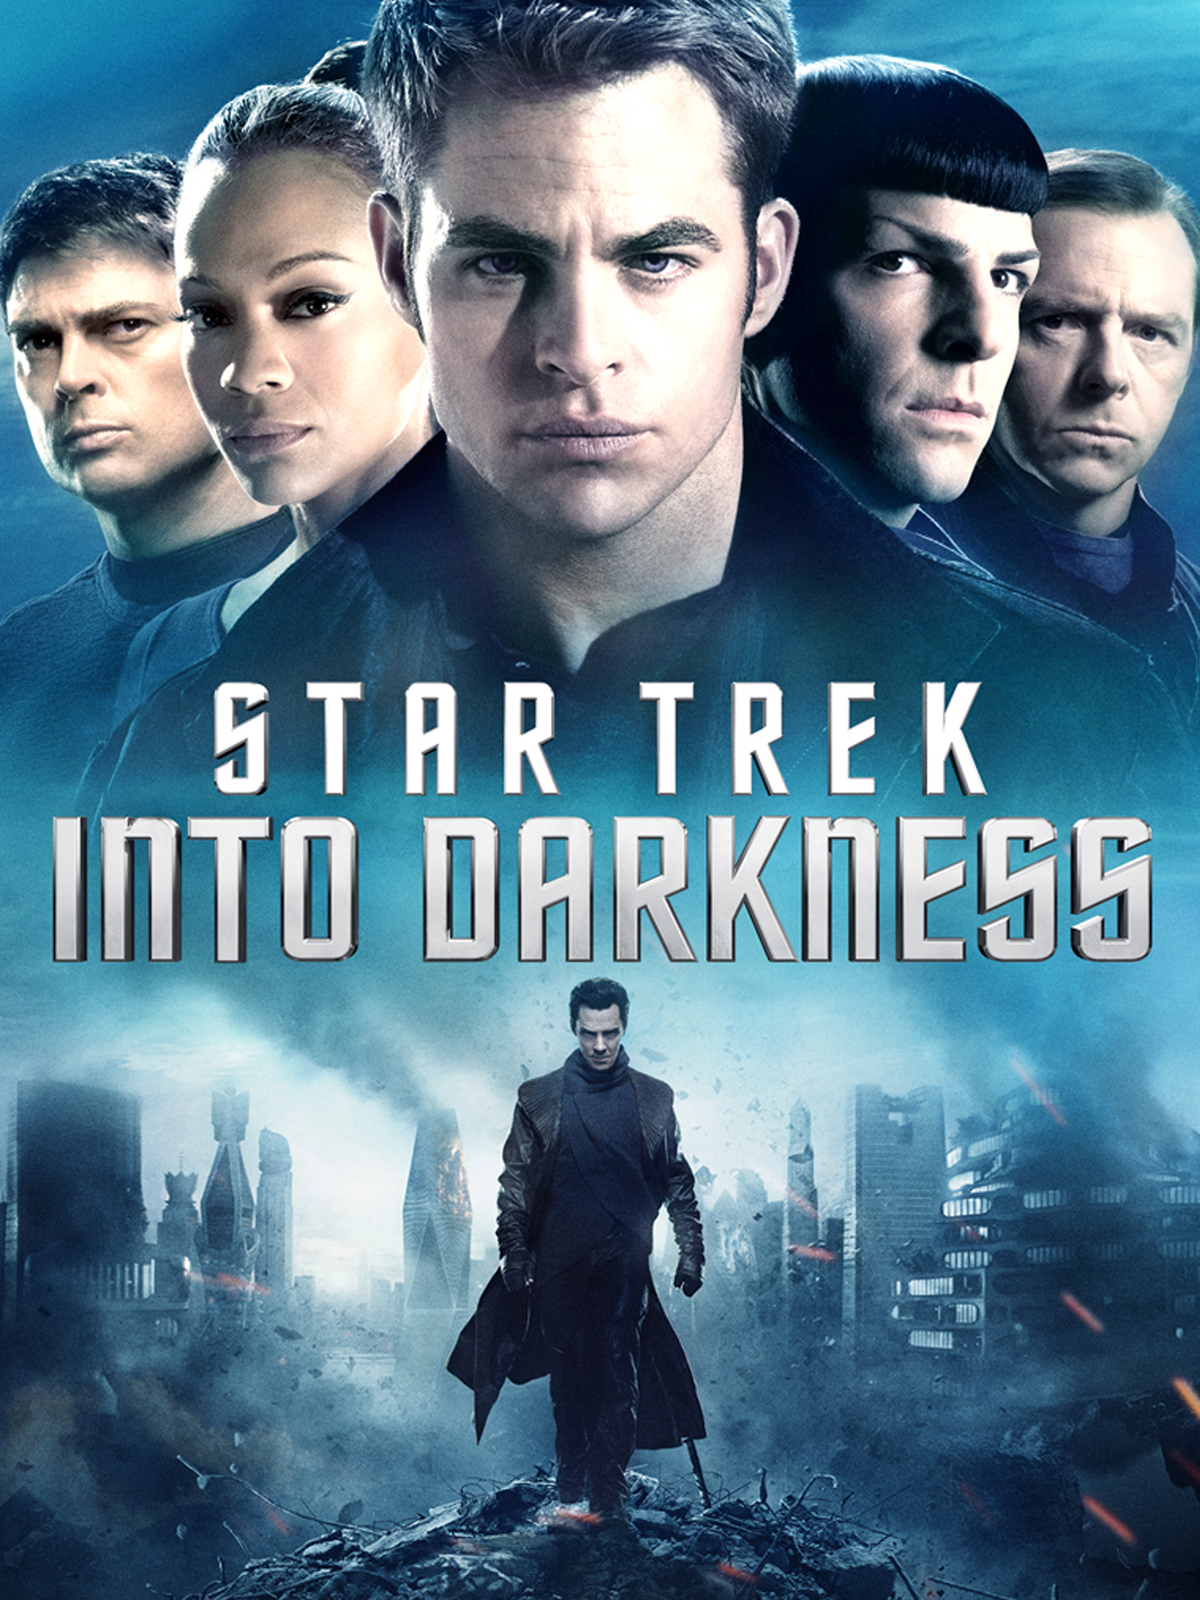 Star Trek into Darkness: Xbox SmartGlass